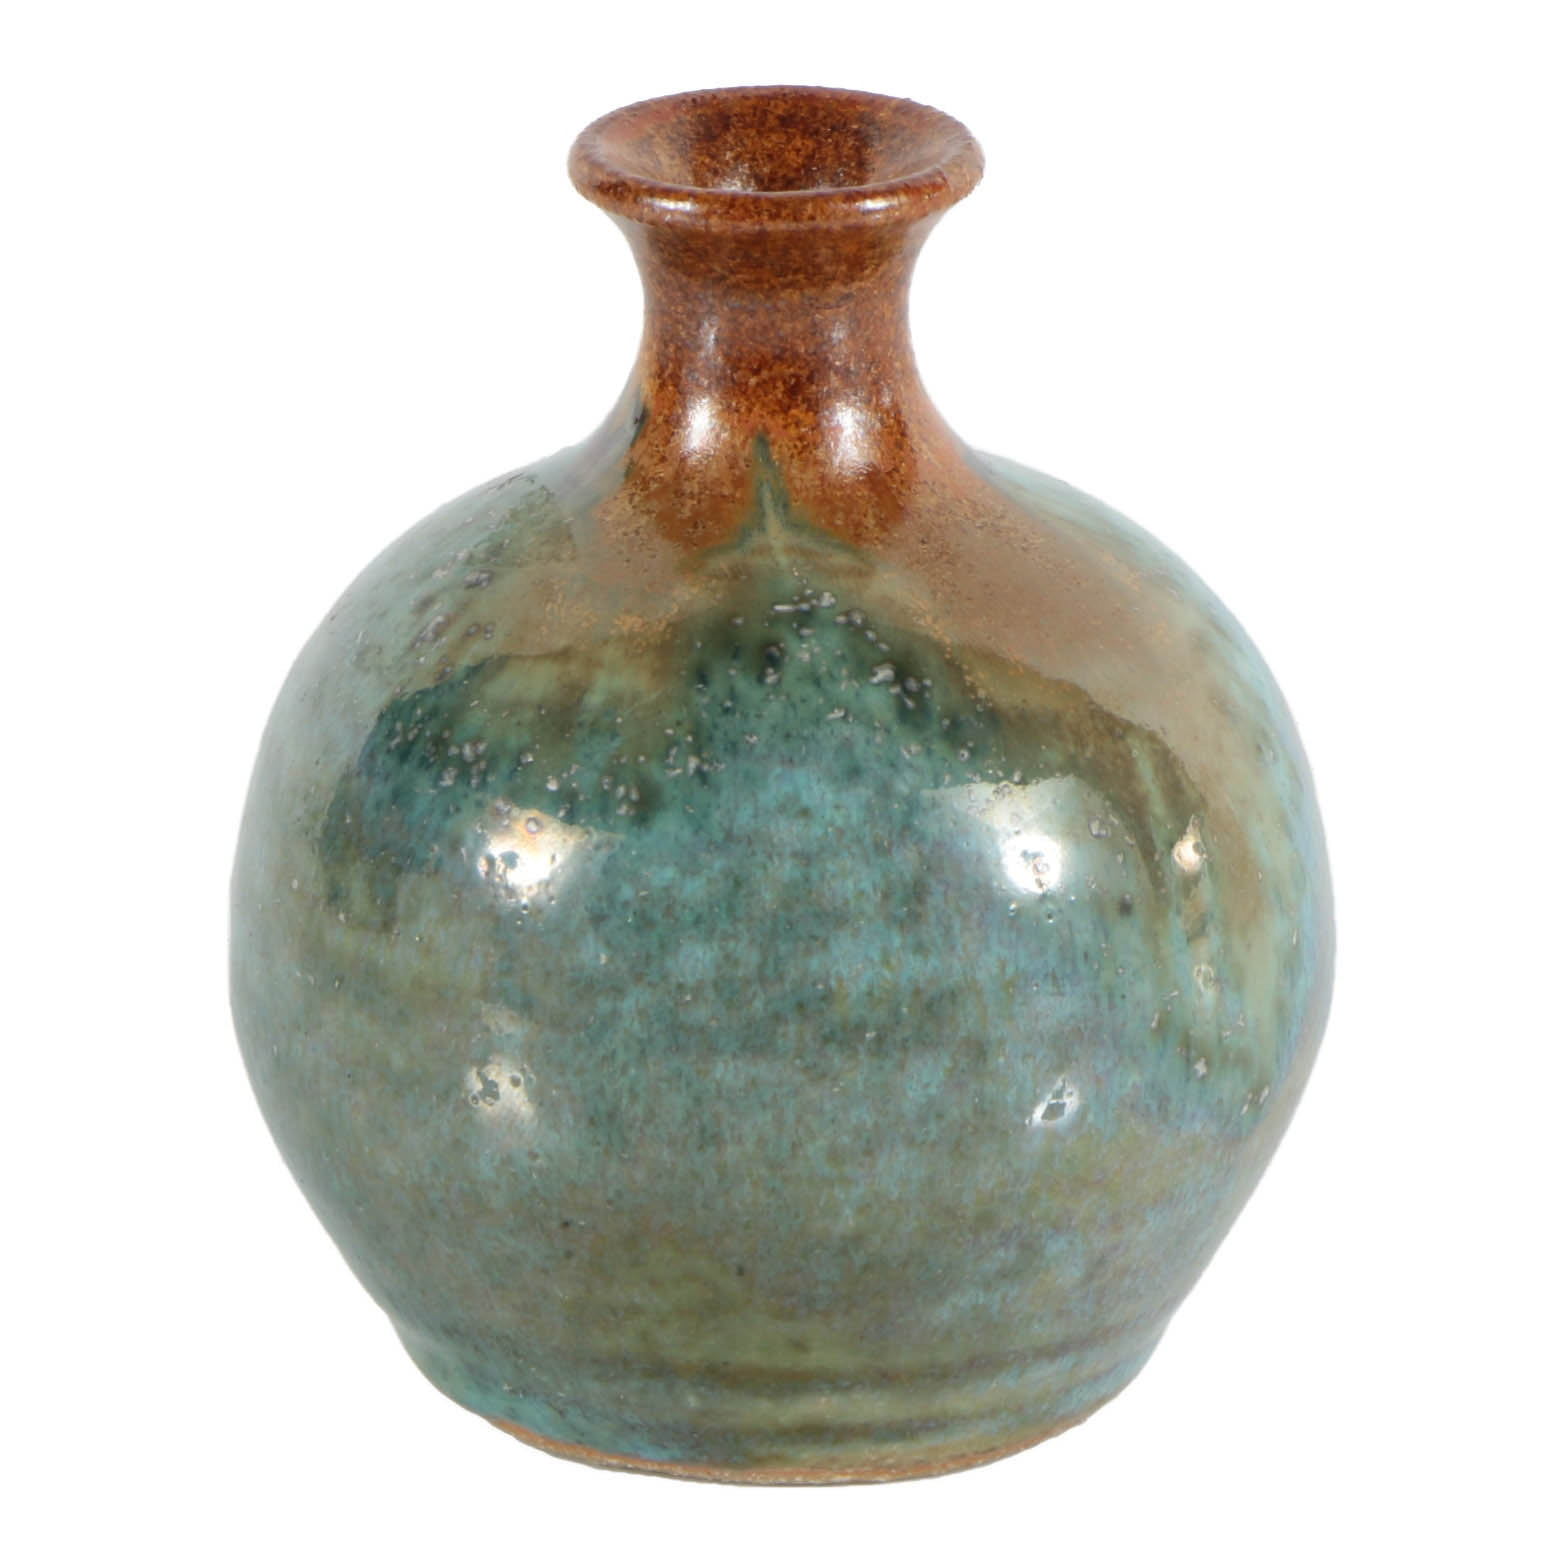 Pigeon Forge Pottery Cabinet Vase with Copper and Turquoise Glaze